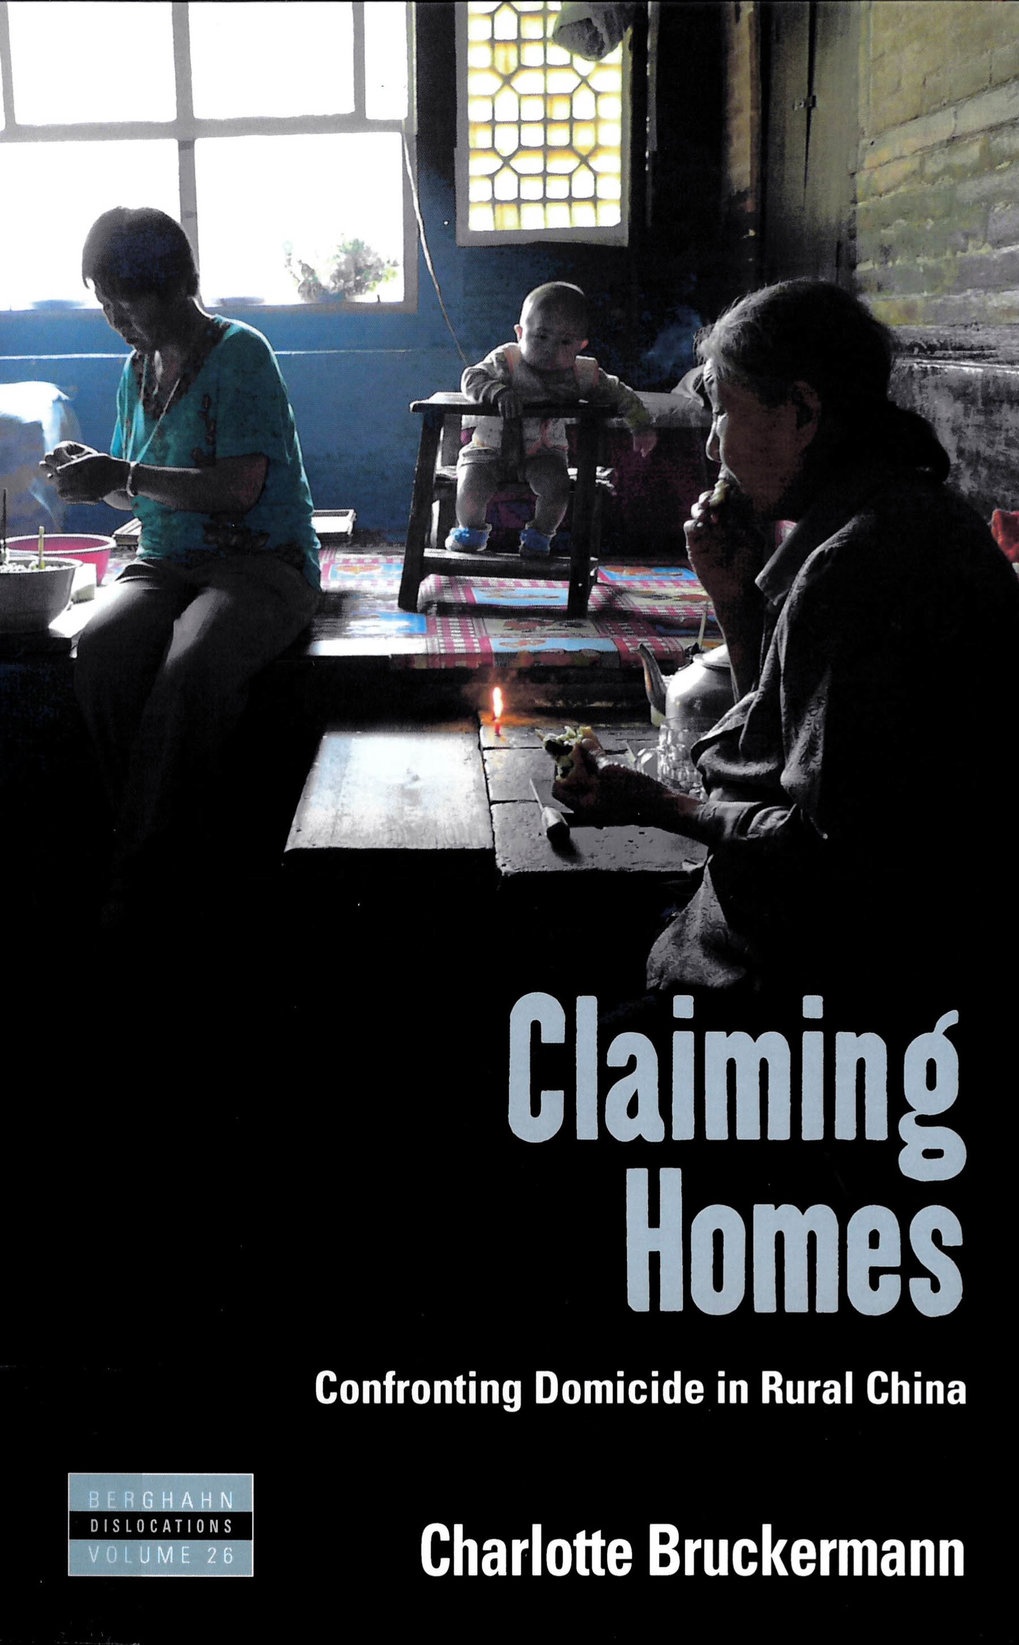 Claiming homes – Confronting domicide in rural China